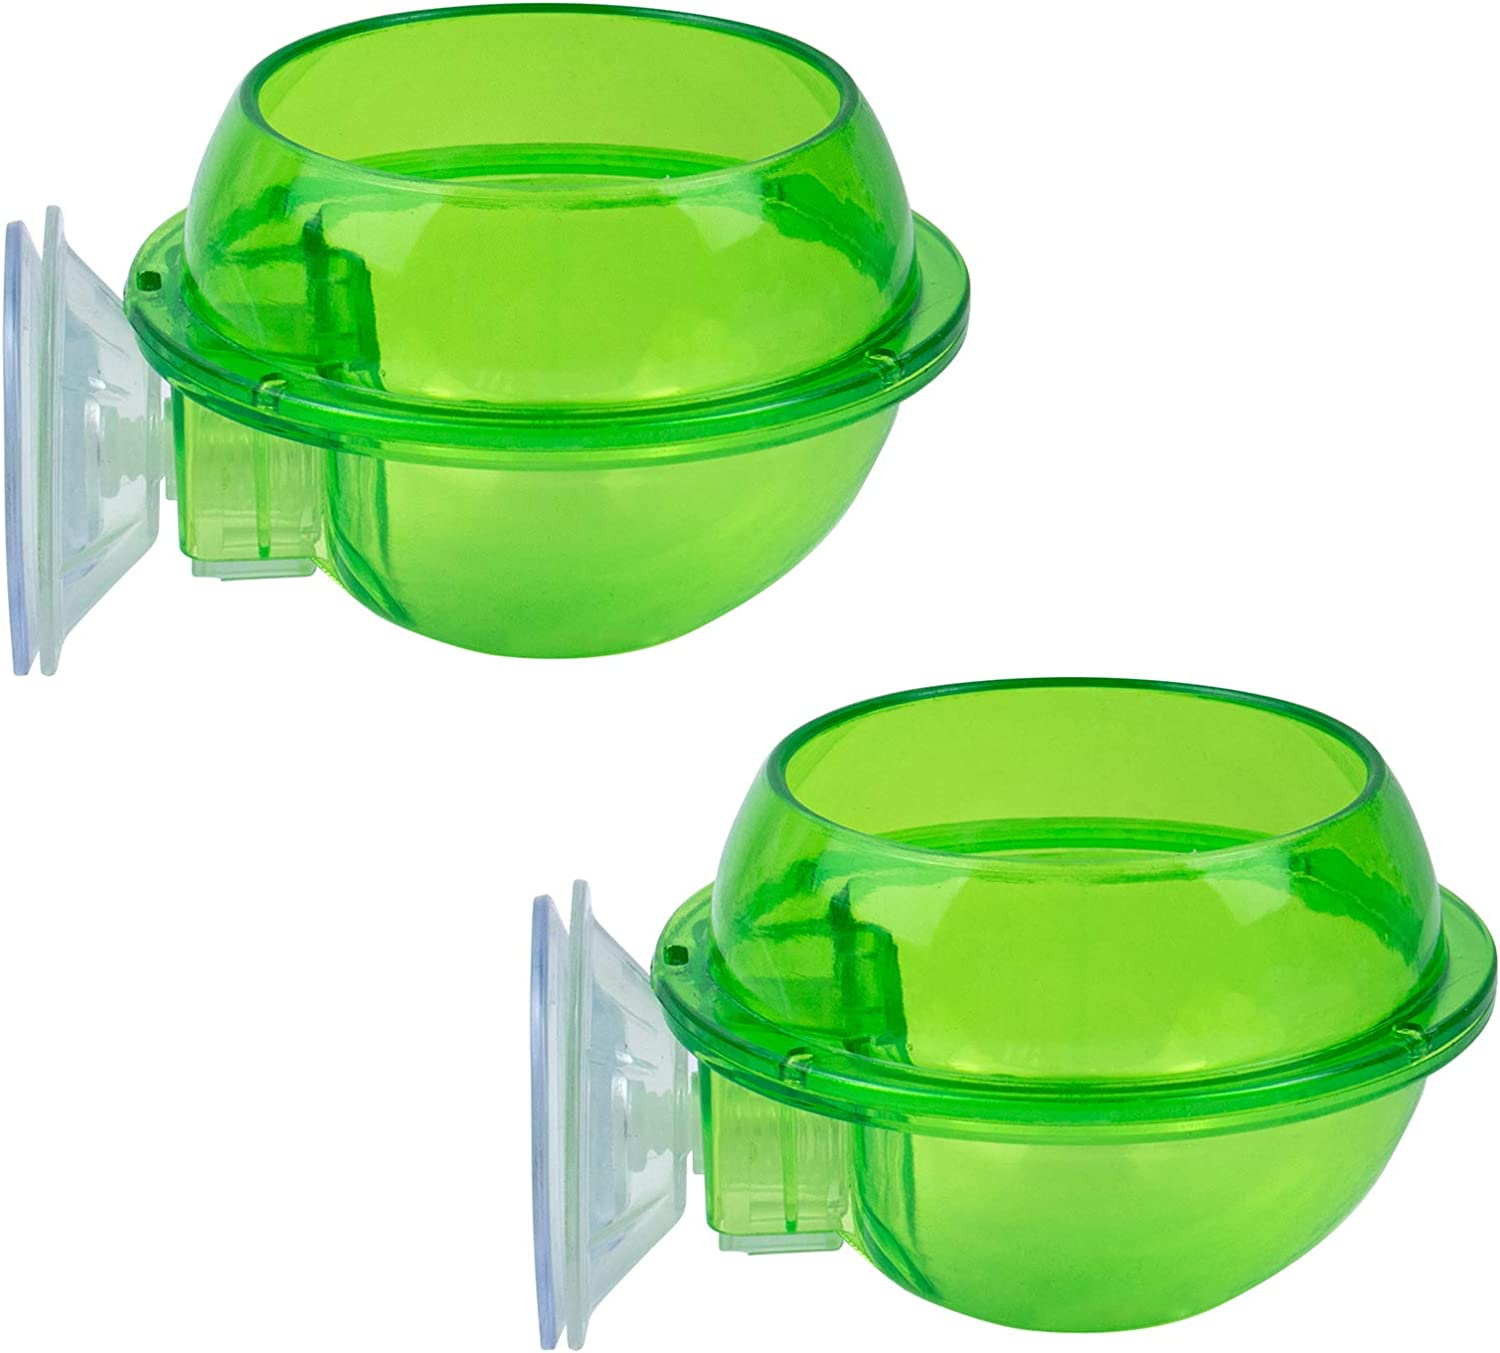 AUEAR, 2 Pack Reptile Suction Cup Feeder Chameleon Feeding Food Bowl Water Dish Gecko Ledge Supplies Accessories for Gecko Lizard Bearded Dragon